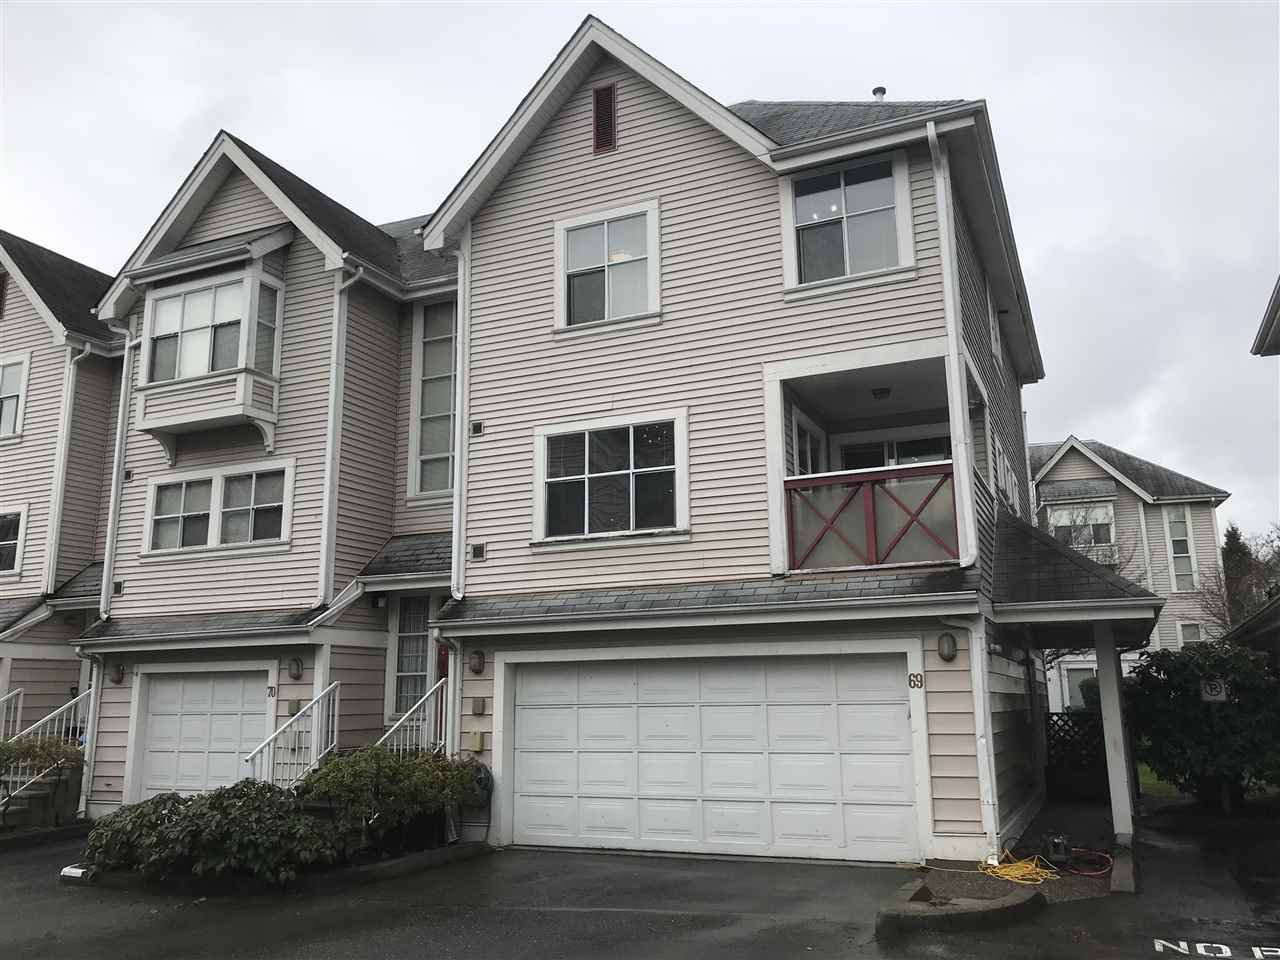 Main Photo: 69 2450 HAWTHORNE Avenue in Port Coquitlam: Central Pt Coquitlam Townhouse for sale : MLS®# R2437275